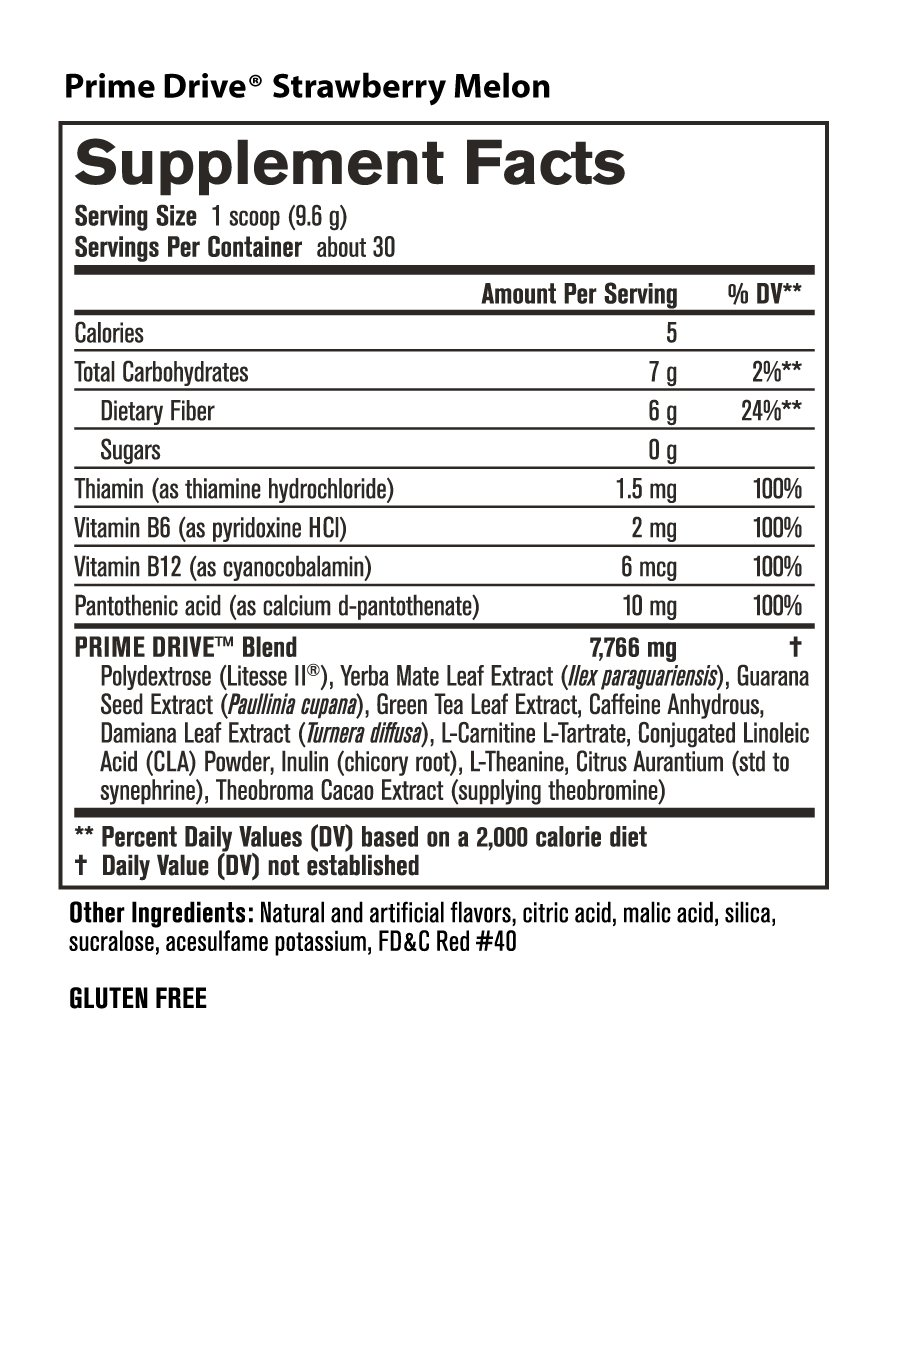 Prime Drive -Nutrition Facts